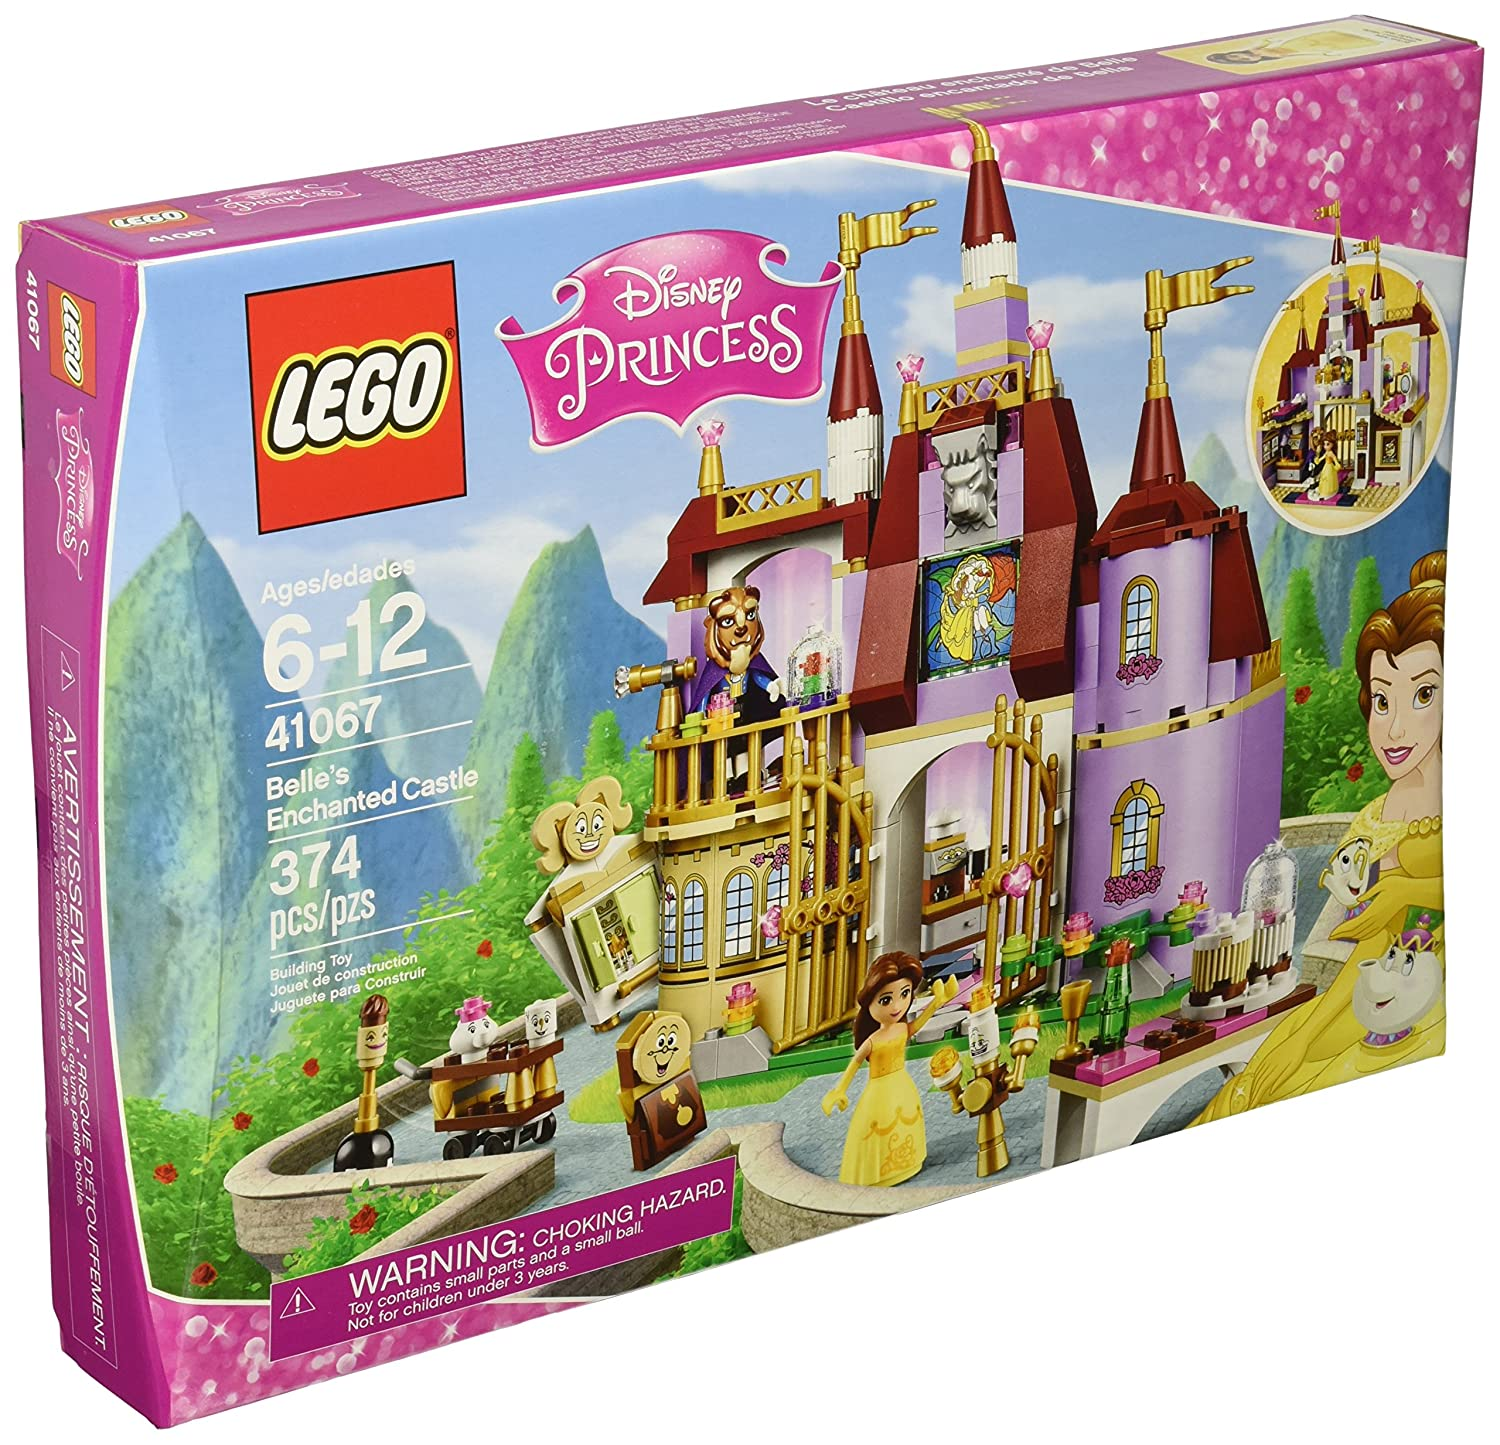 LEGO fans can build Beast's castle!